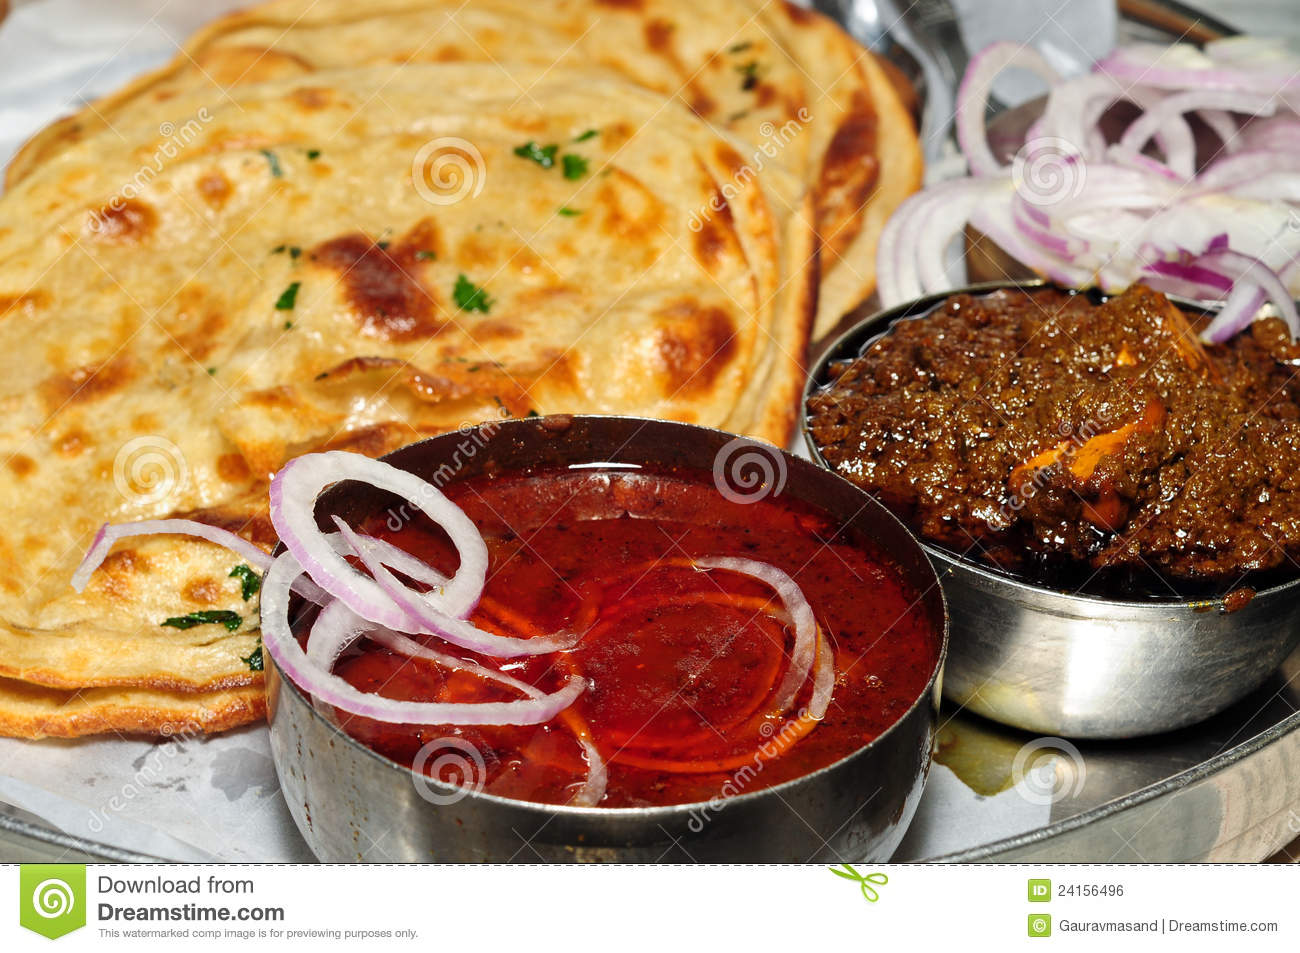 Indian Food Stock Photo Image Of Chili Korma Curry 24156496